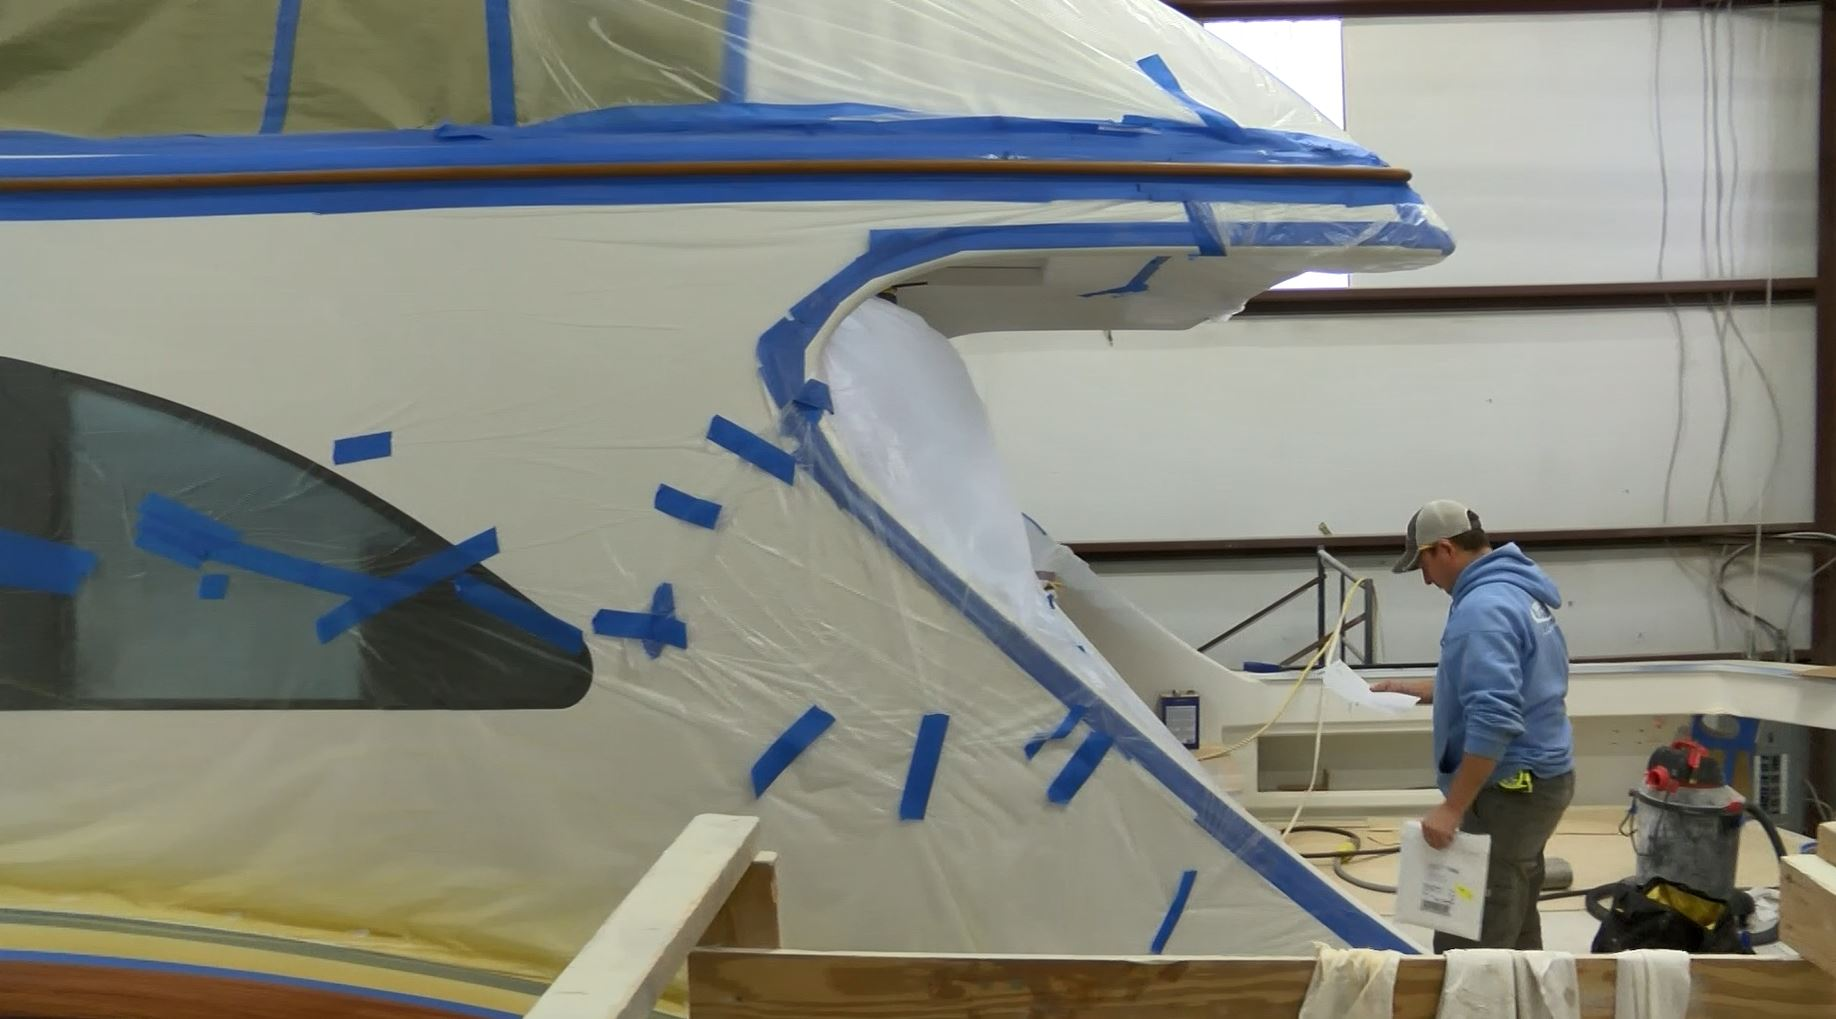 building boats_581710